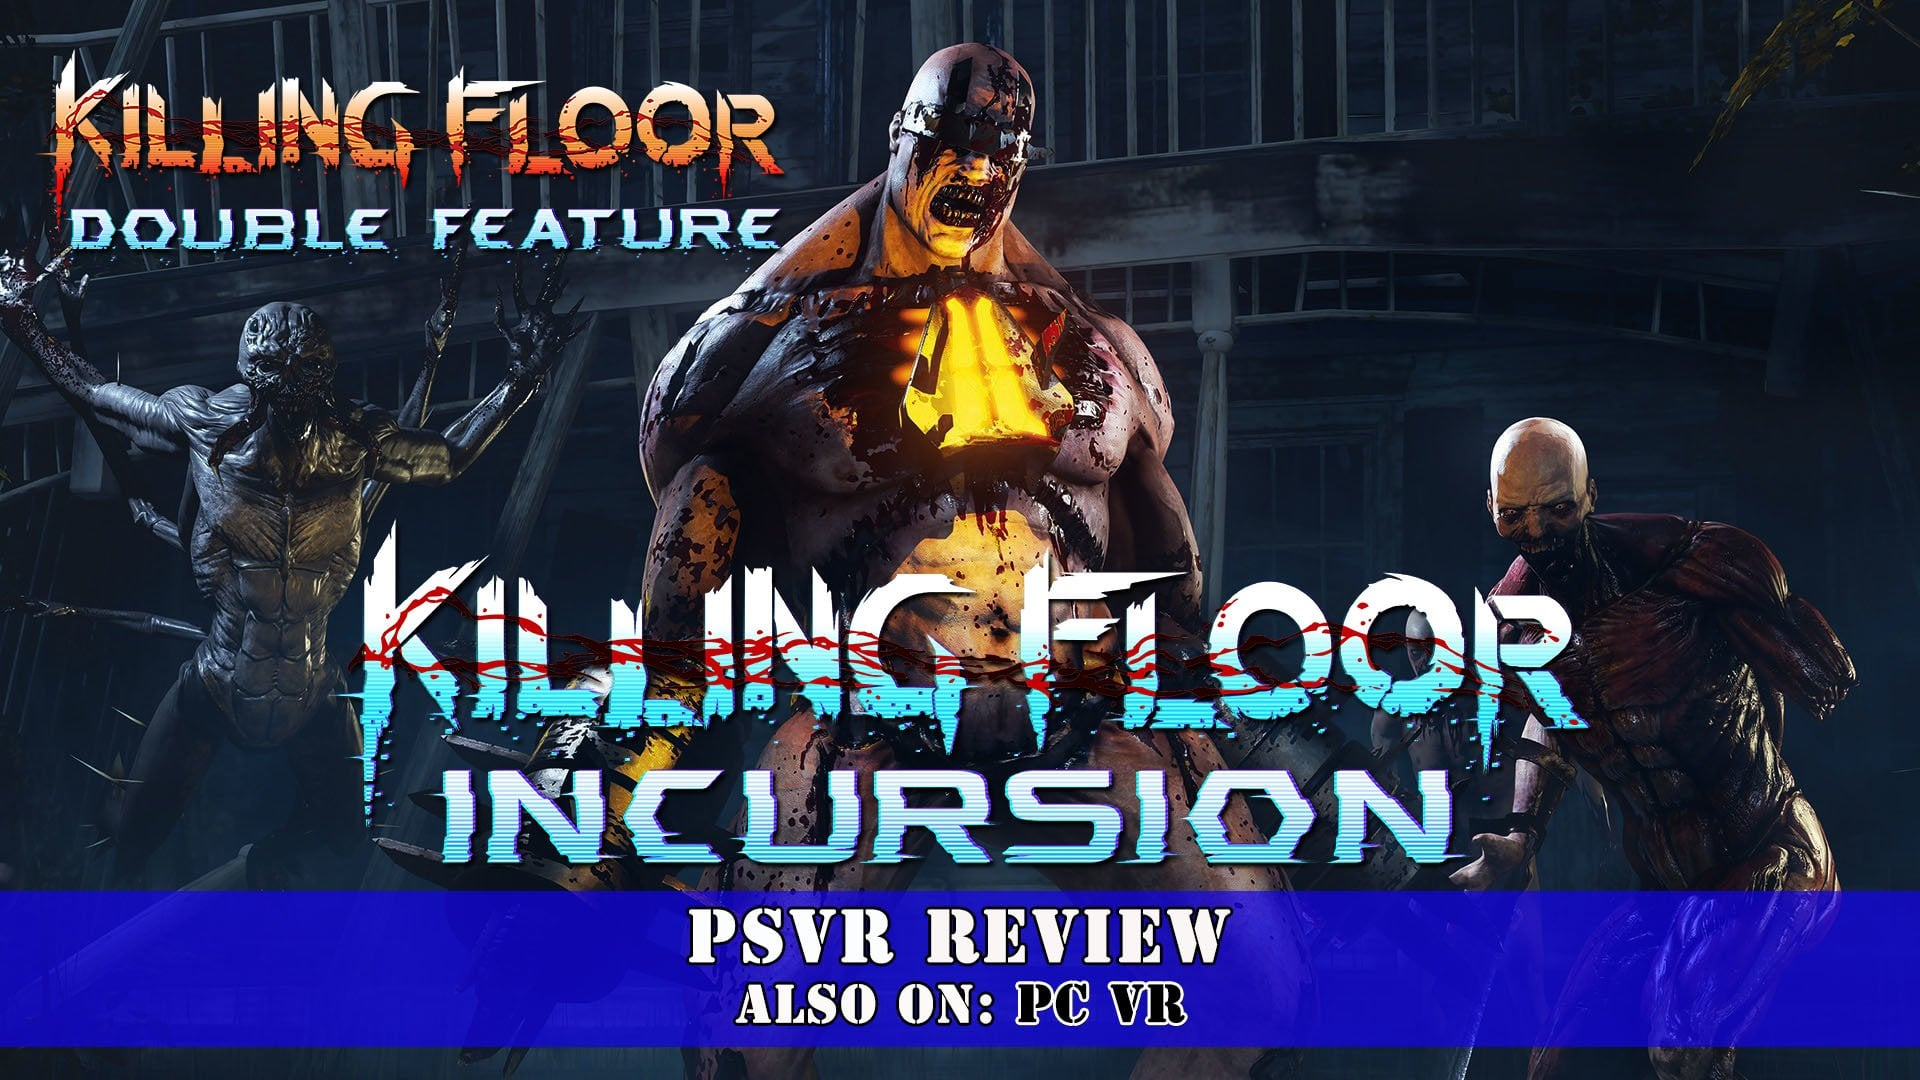 Killing Floor: Incursion [Killing Floor: Double Feature] (PSVR) Review